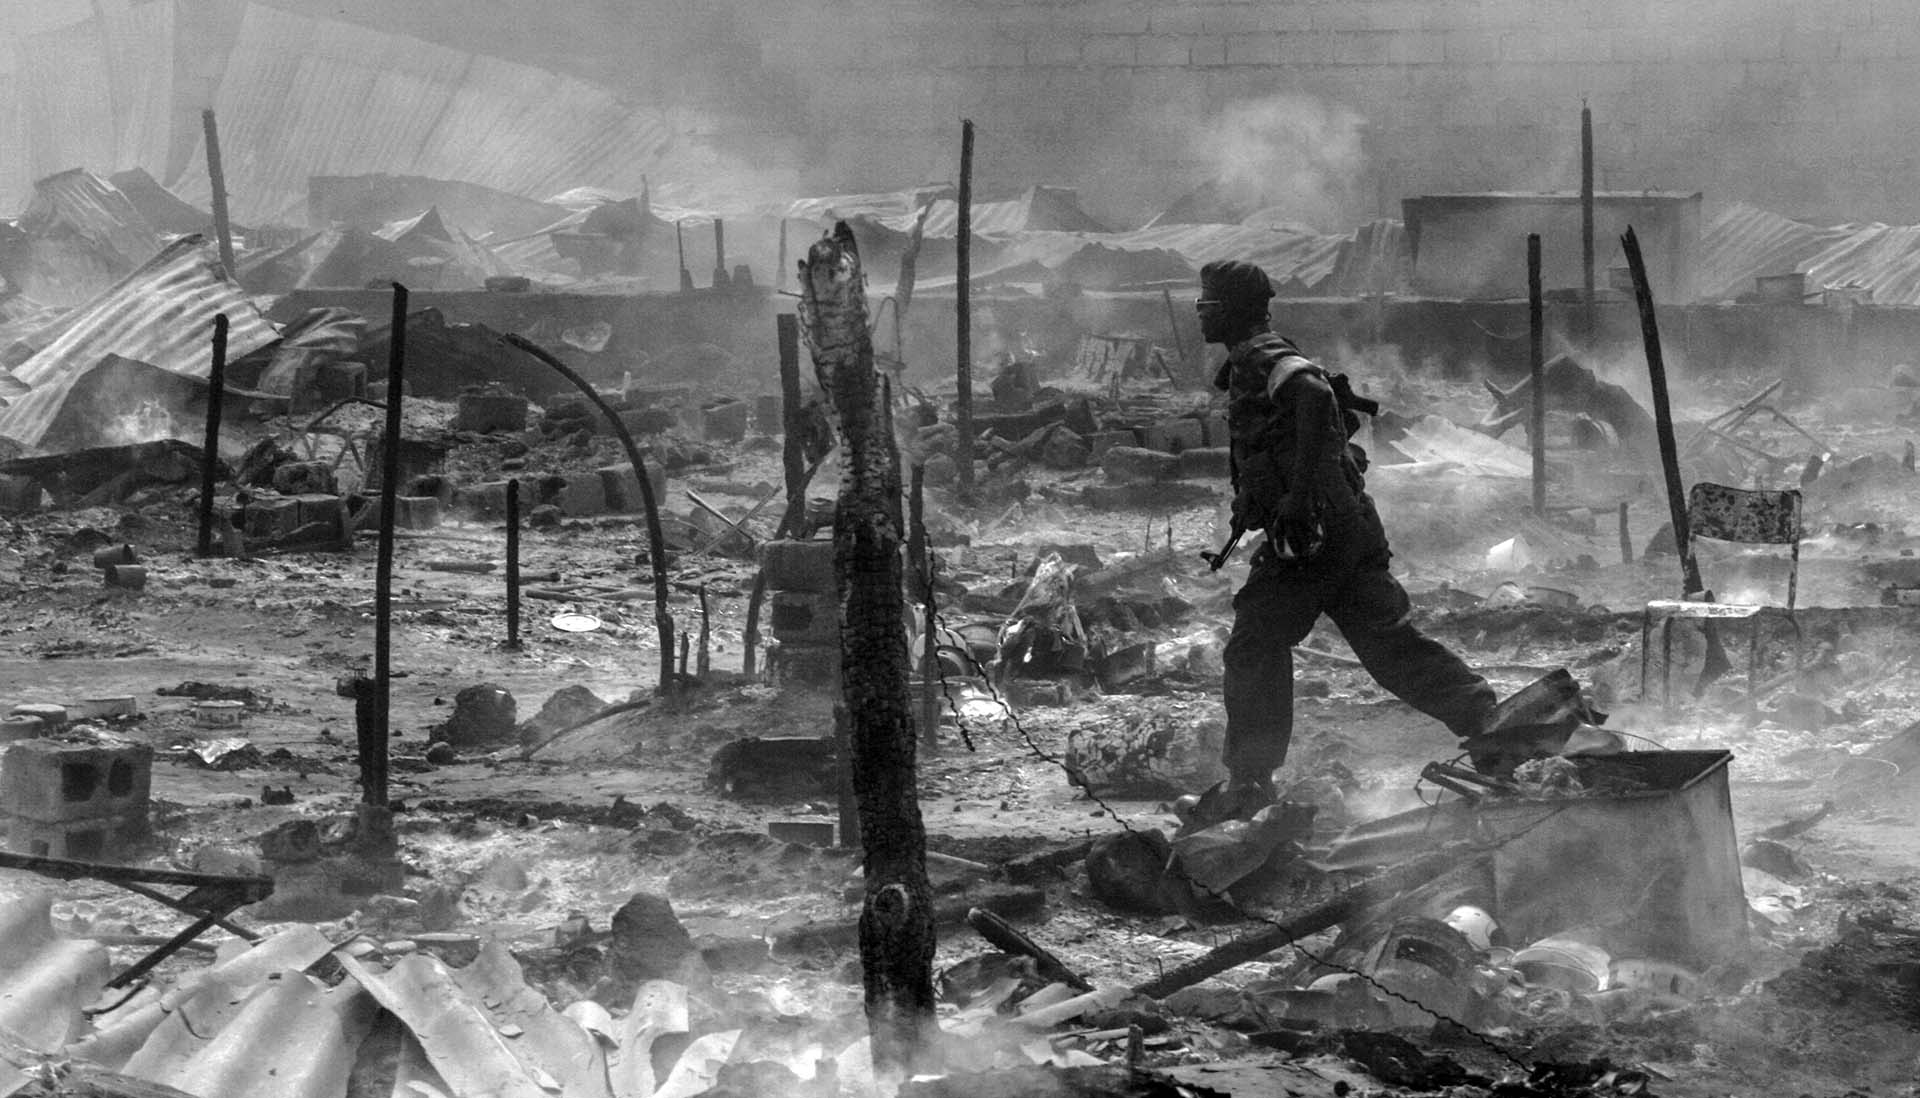 A soldier run through charred remains of the military barracks belong to the armed men belongs to Jean Pierre Bemba, presidential candiate, July 27 2006. Thus the tension is high in the capital ahead of the presidential election. Bemba accused Kabia of the arson of the camp.